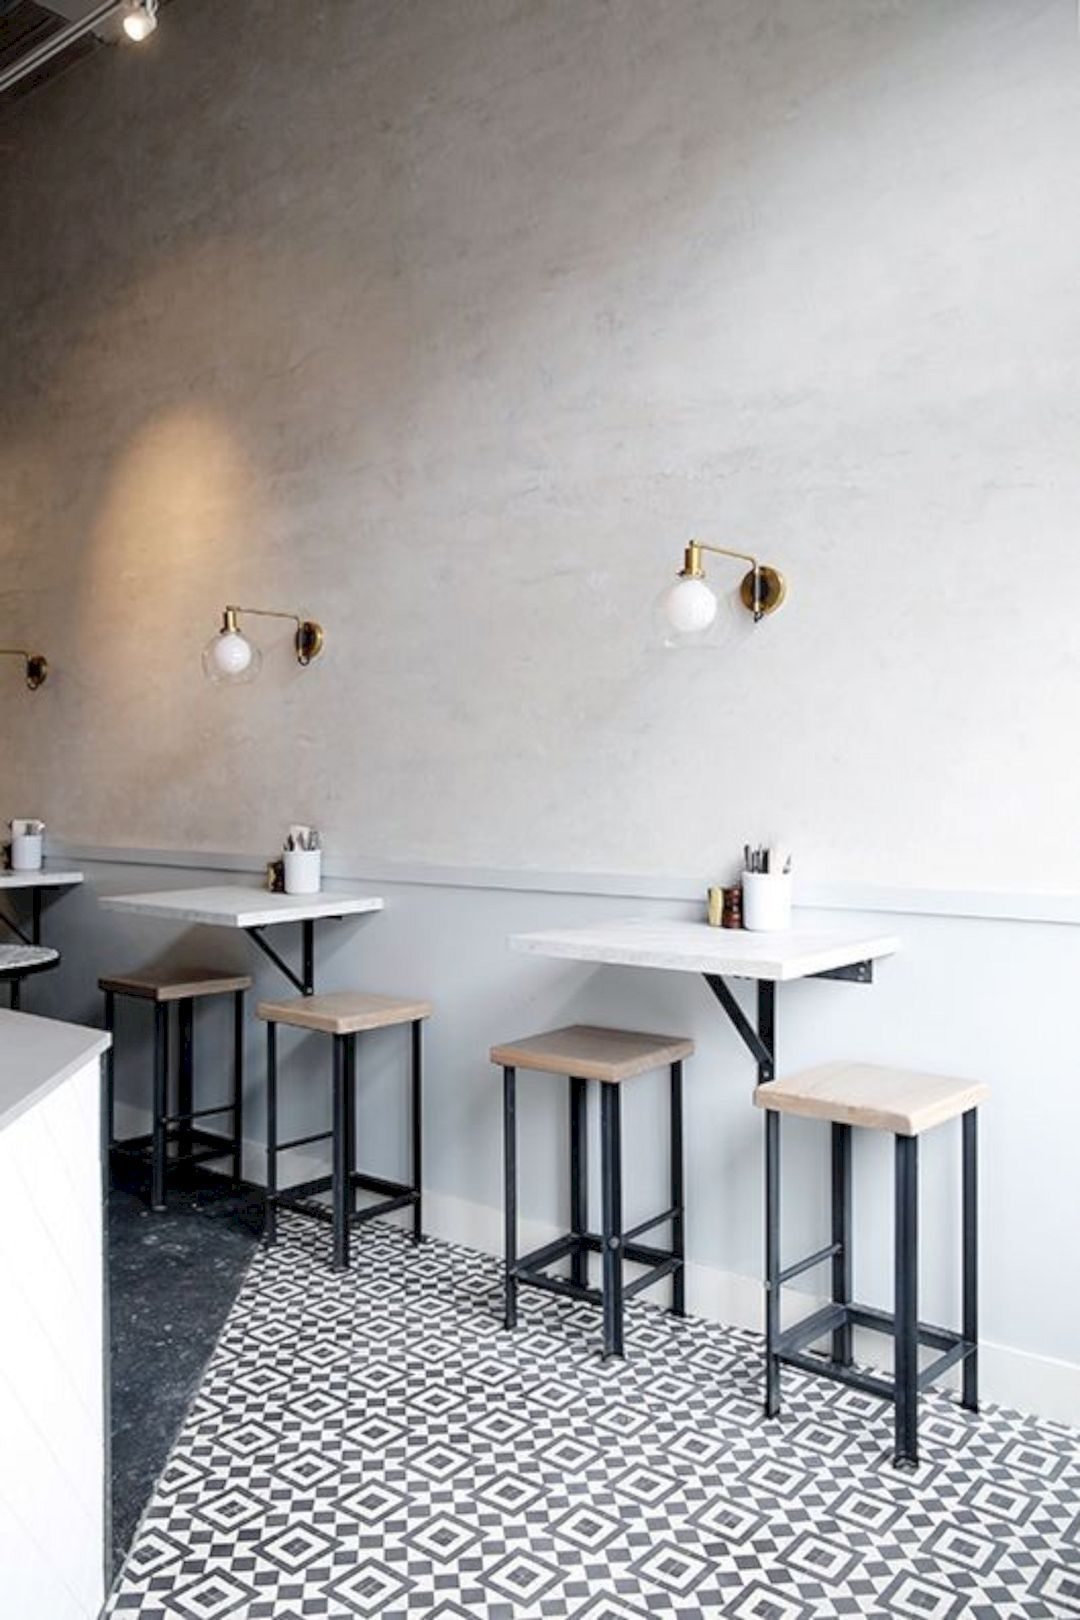 15 Great Interior Design Ideas For Small Restaurant With Images